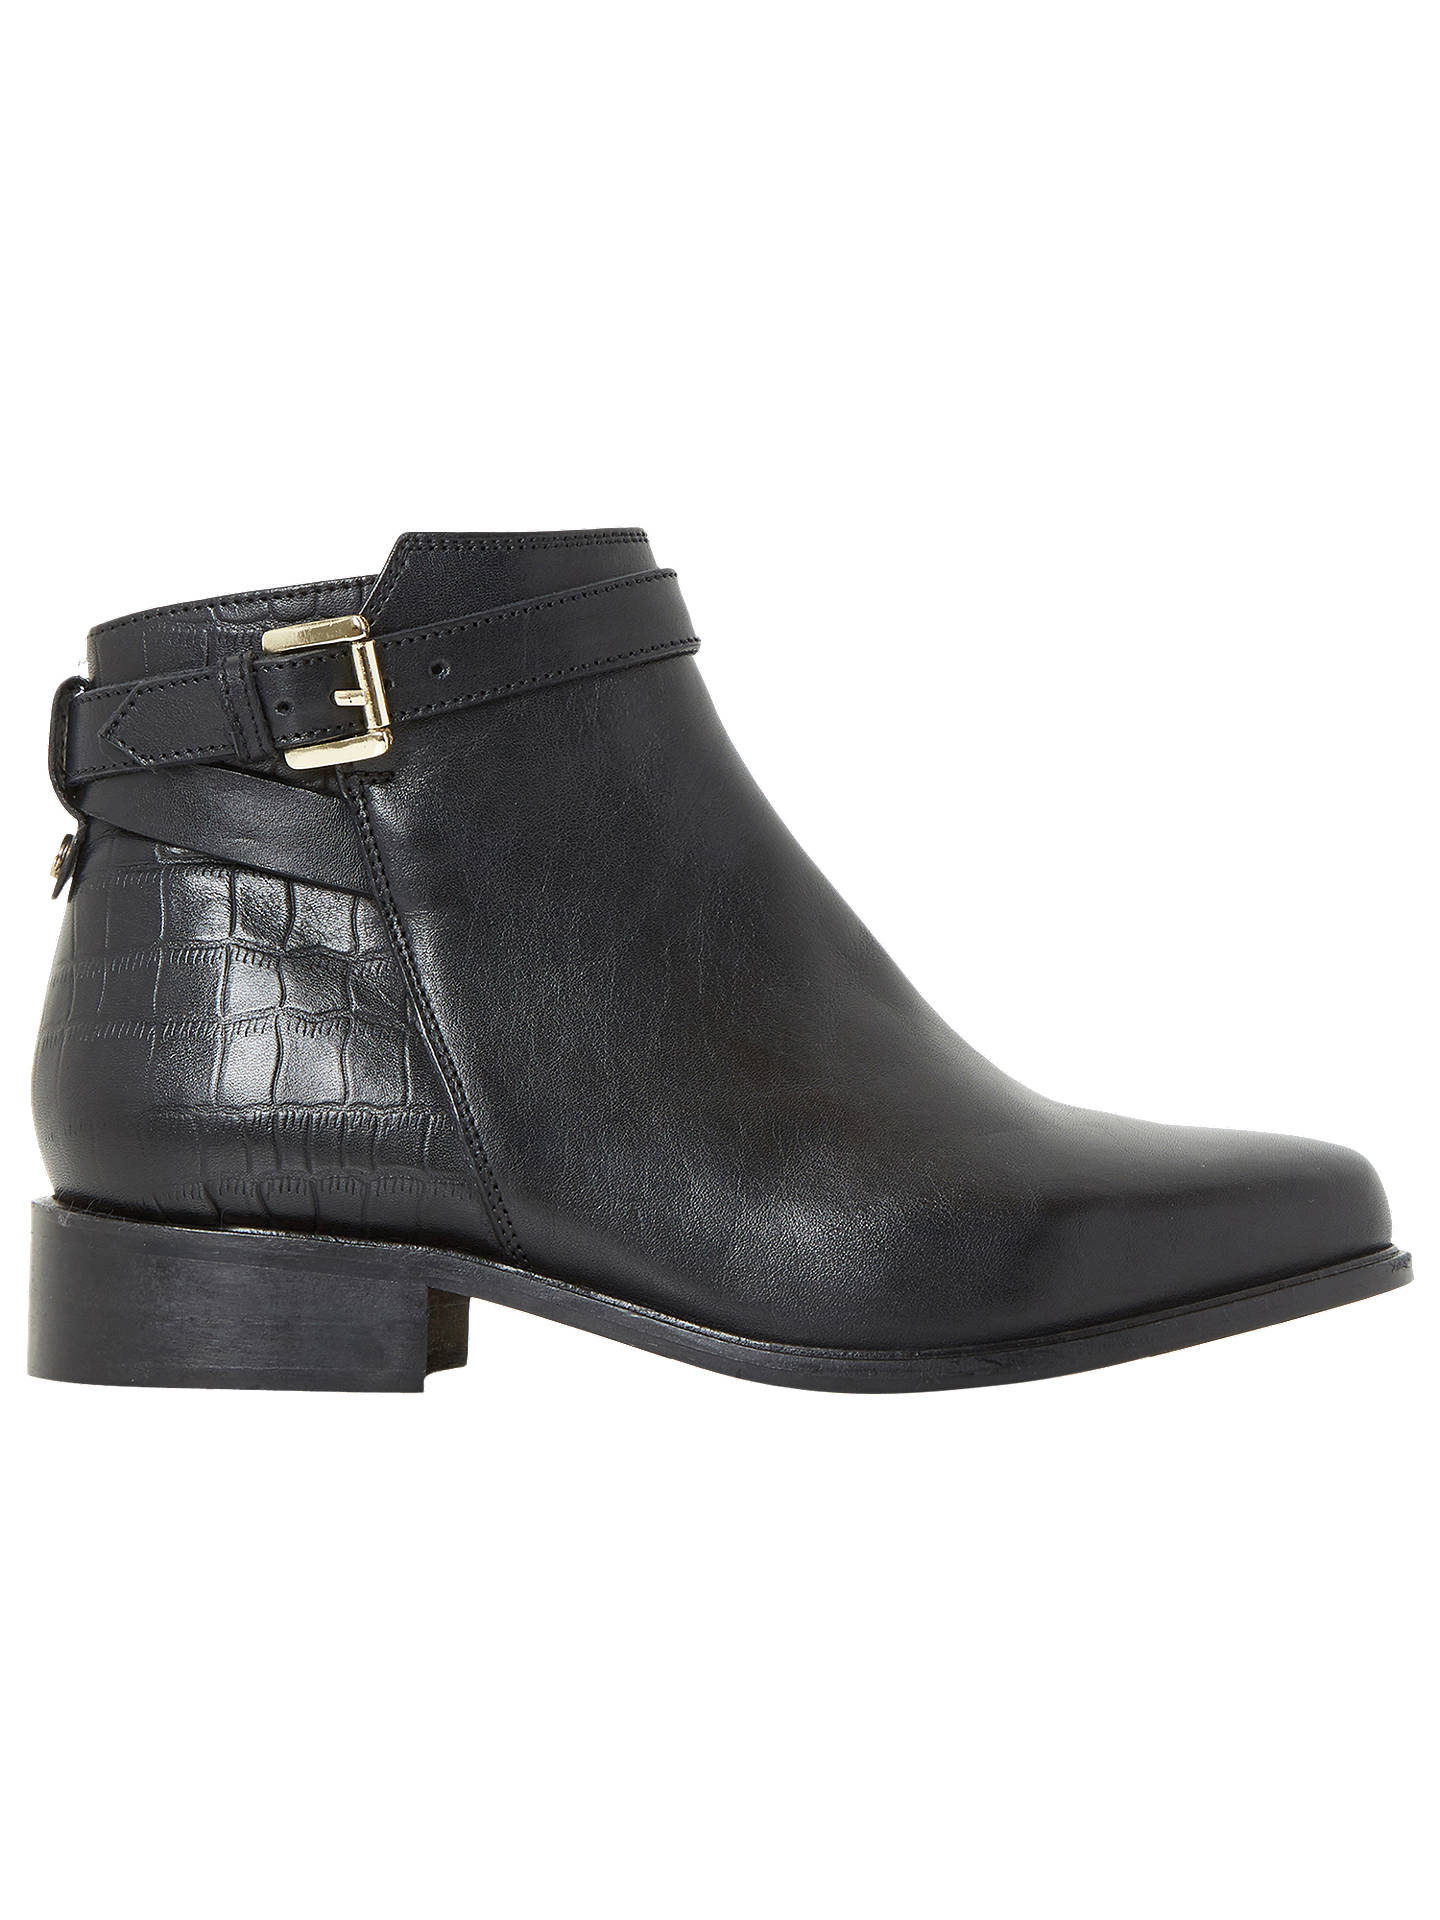 490edf951bf Buy Dune Wide Fit Poppy Ankle Boots